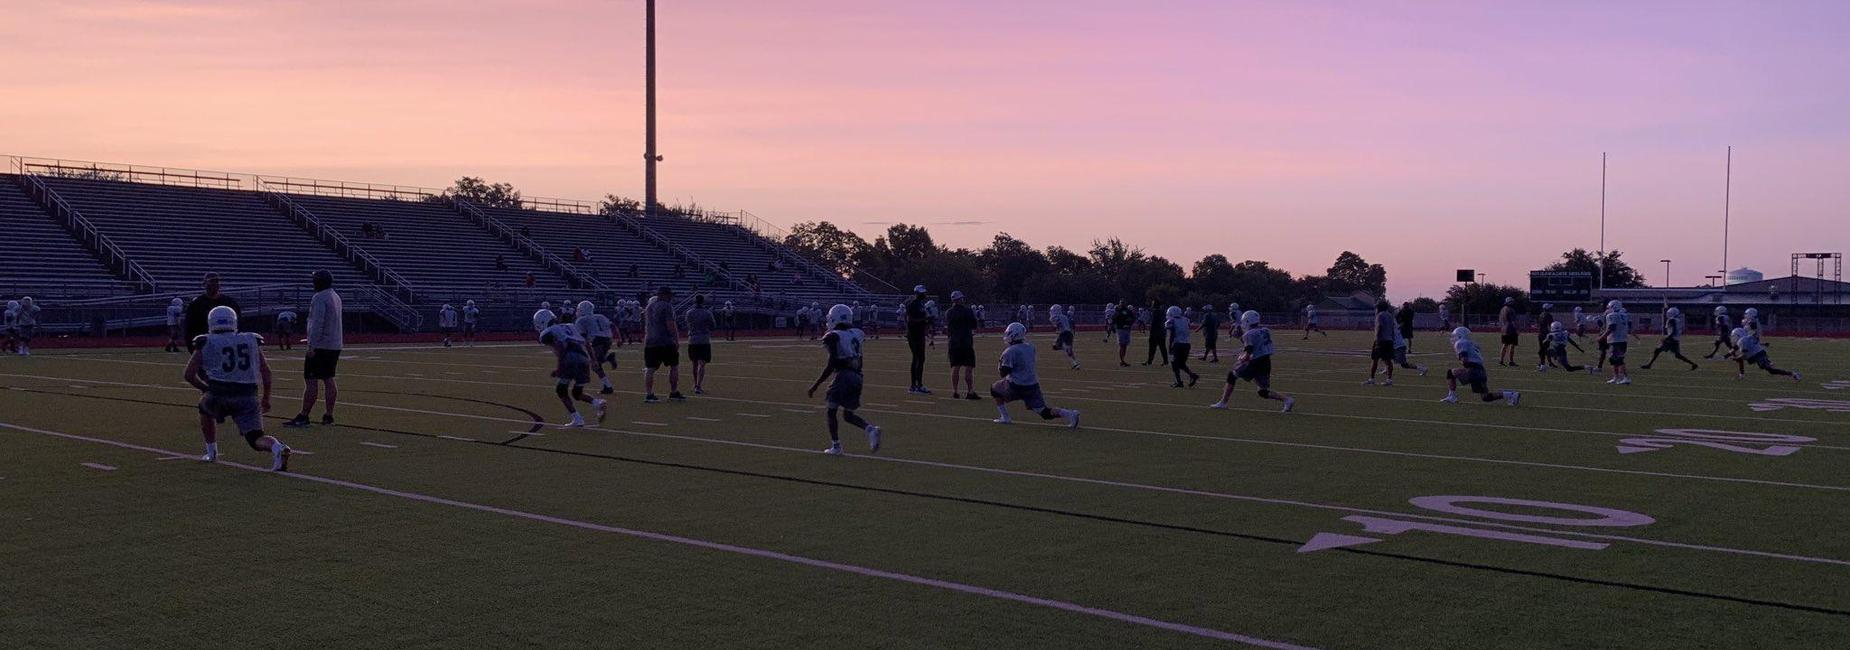 football players in uniform on the field at sunrise